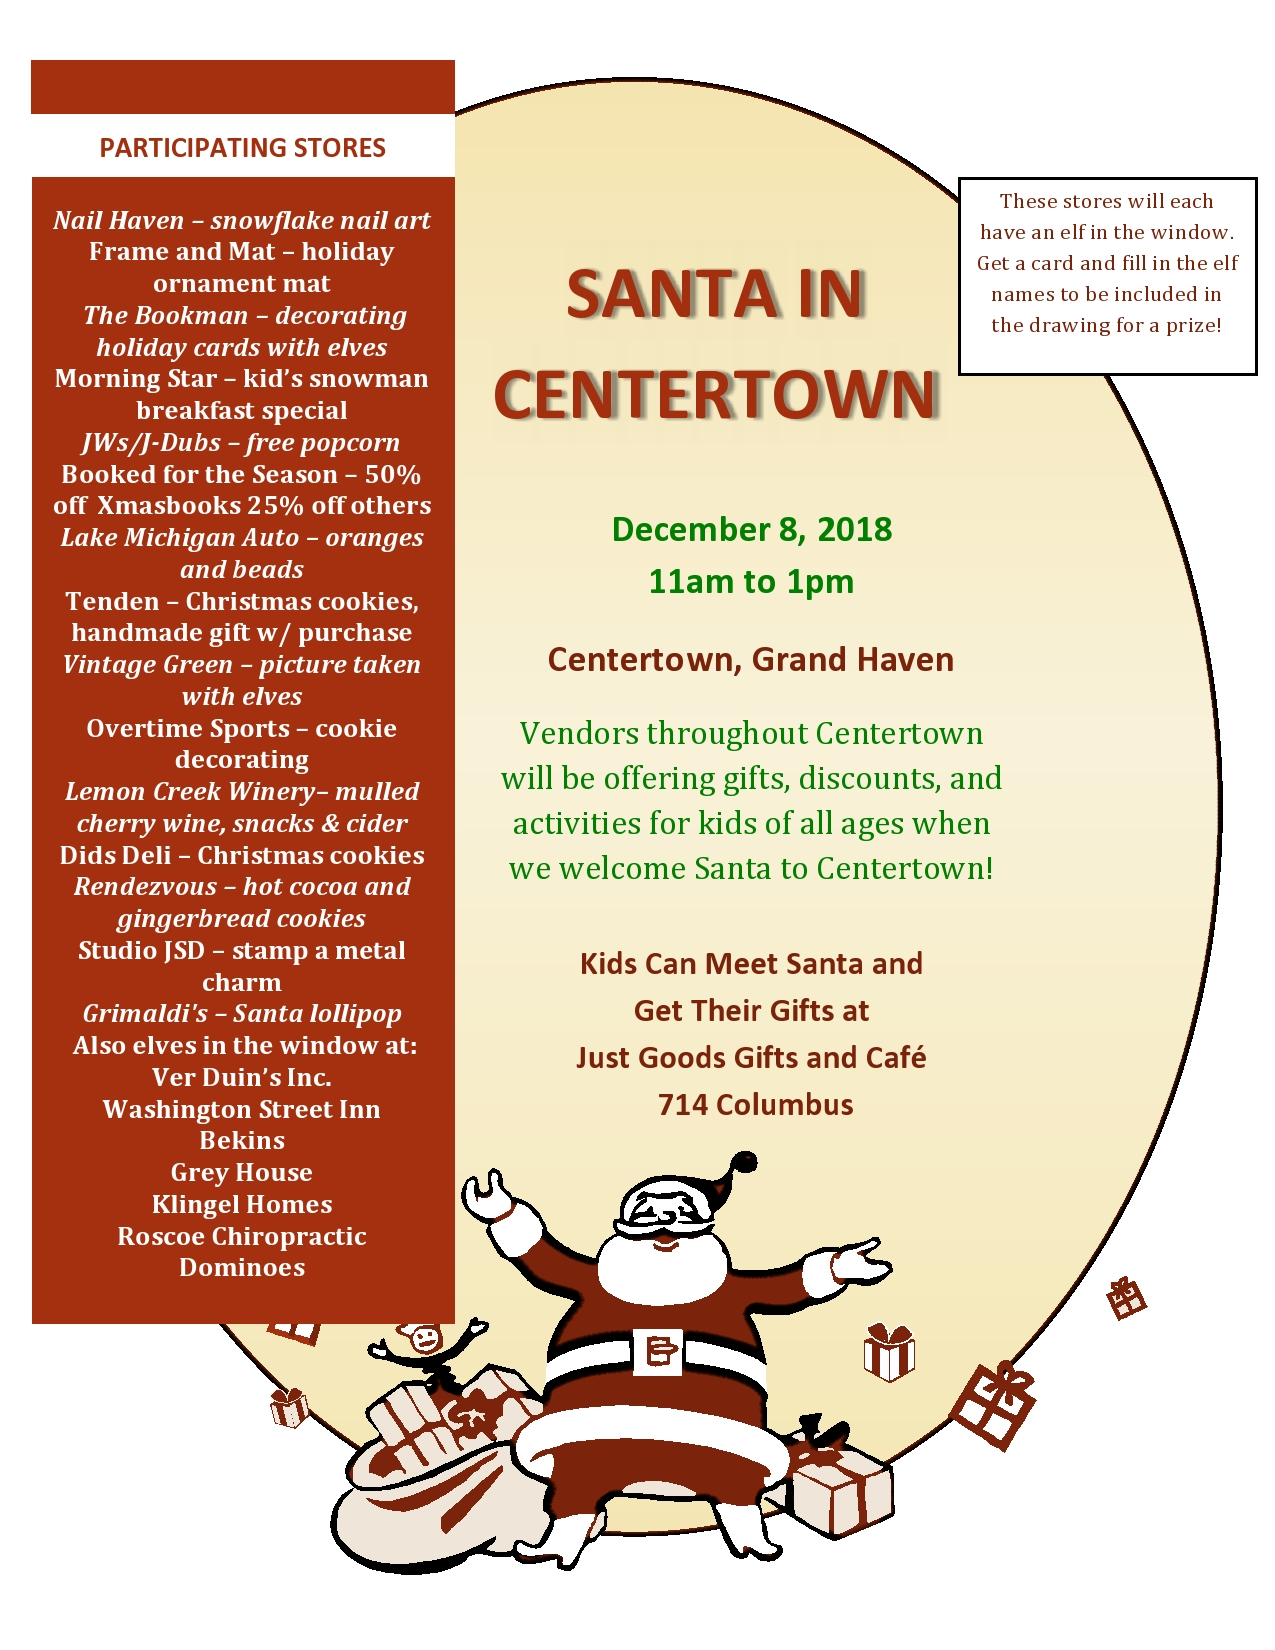 Santa in Centertown